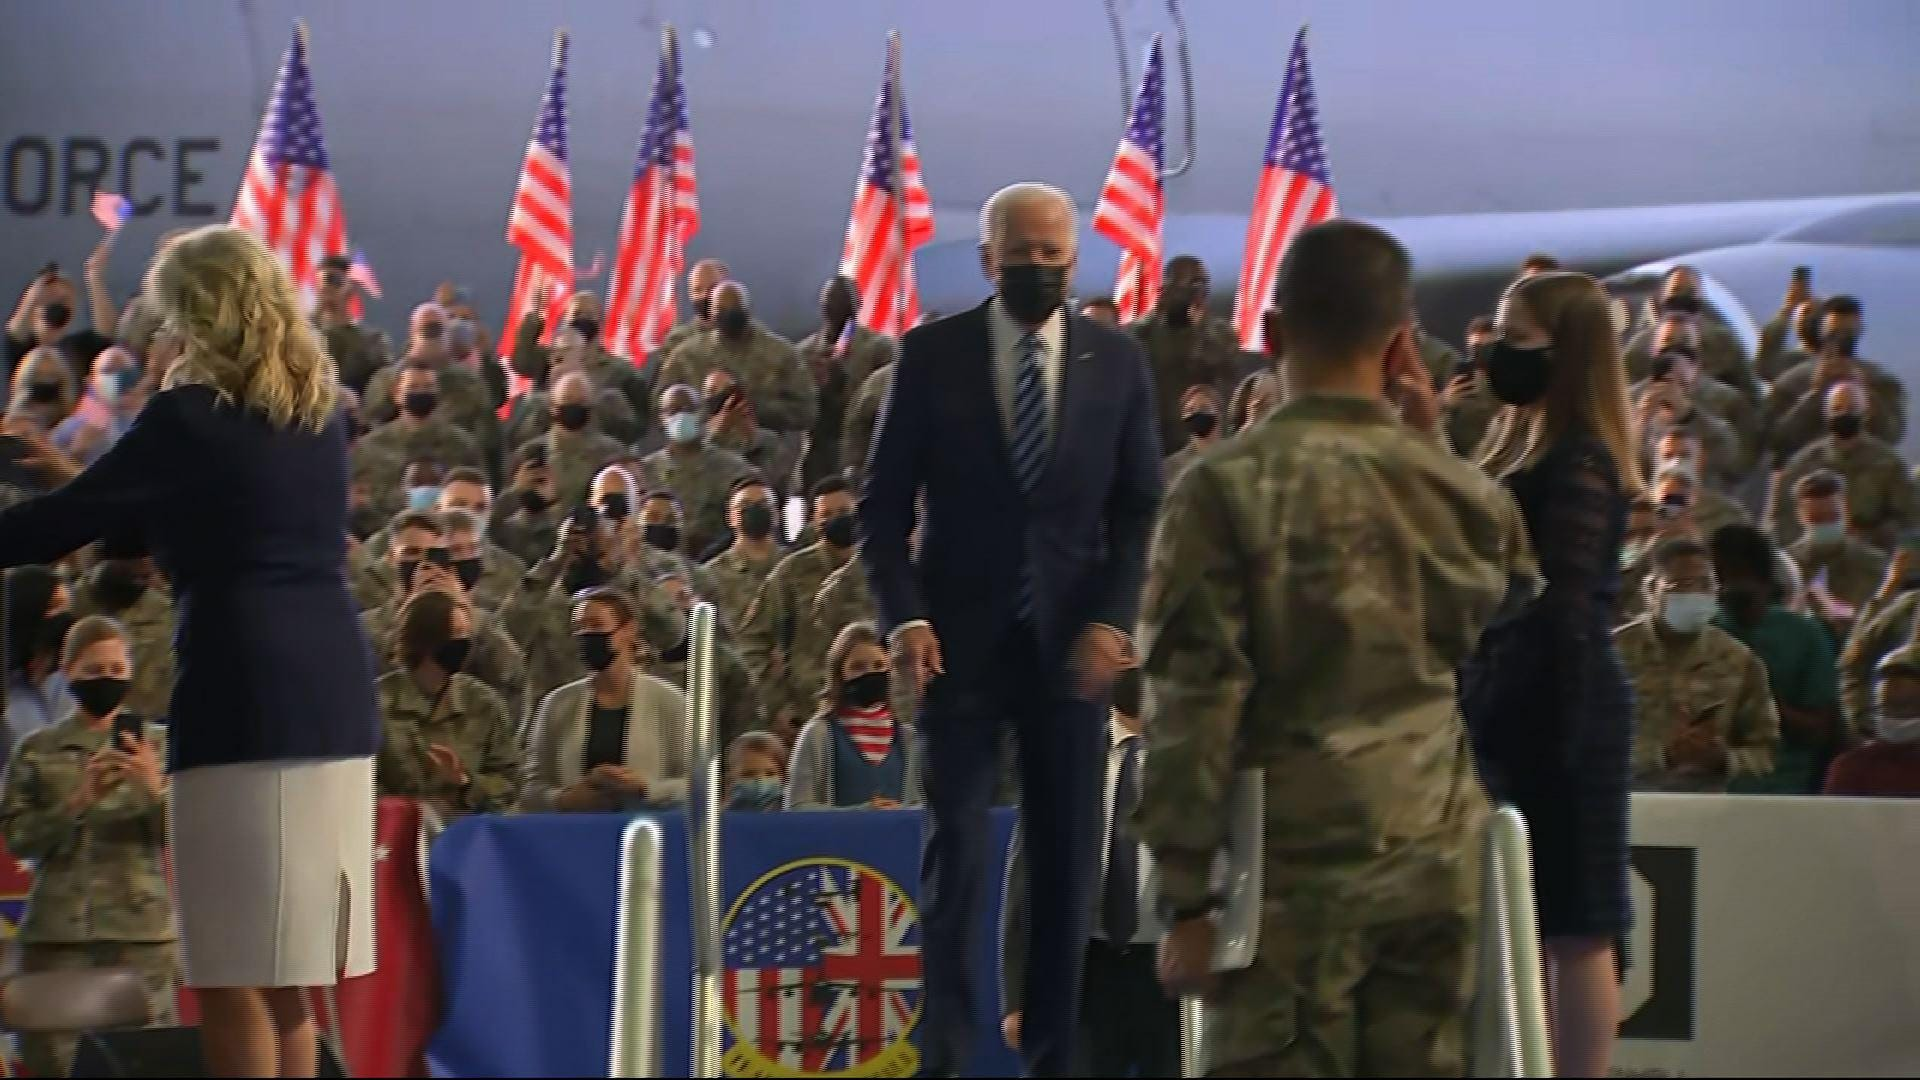 Biden opens overseas trip: 'United States is back' 1